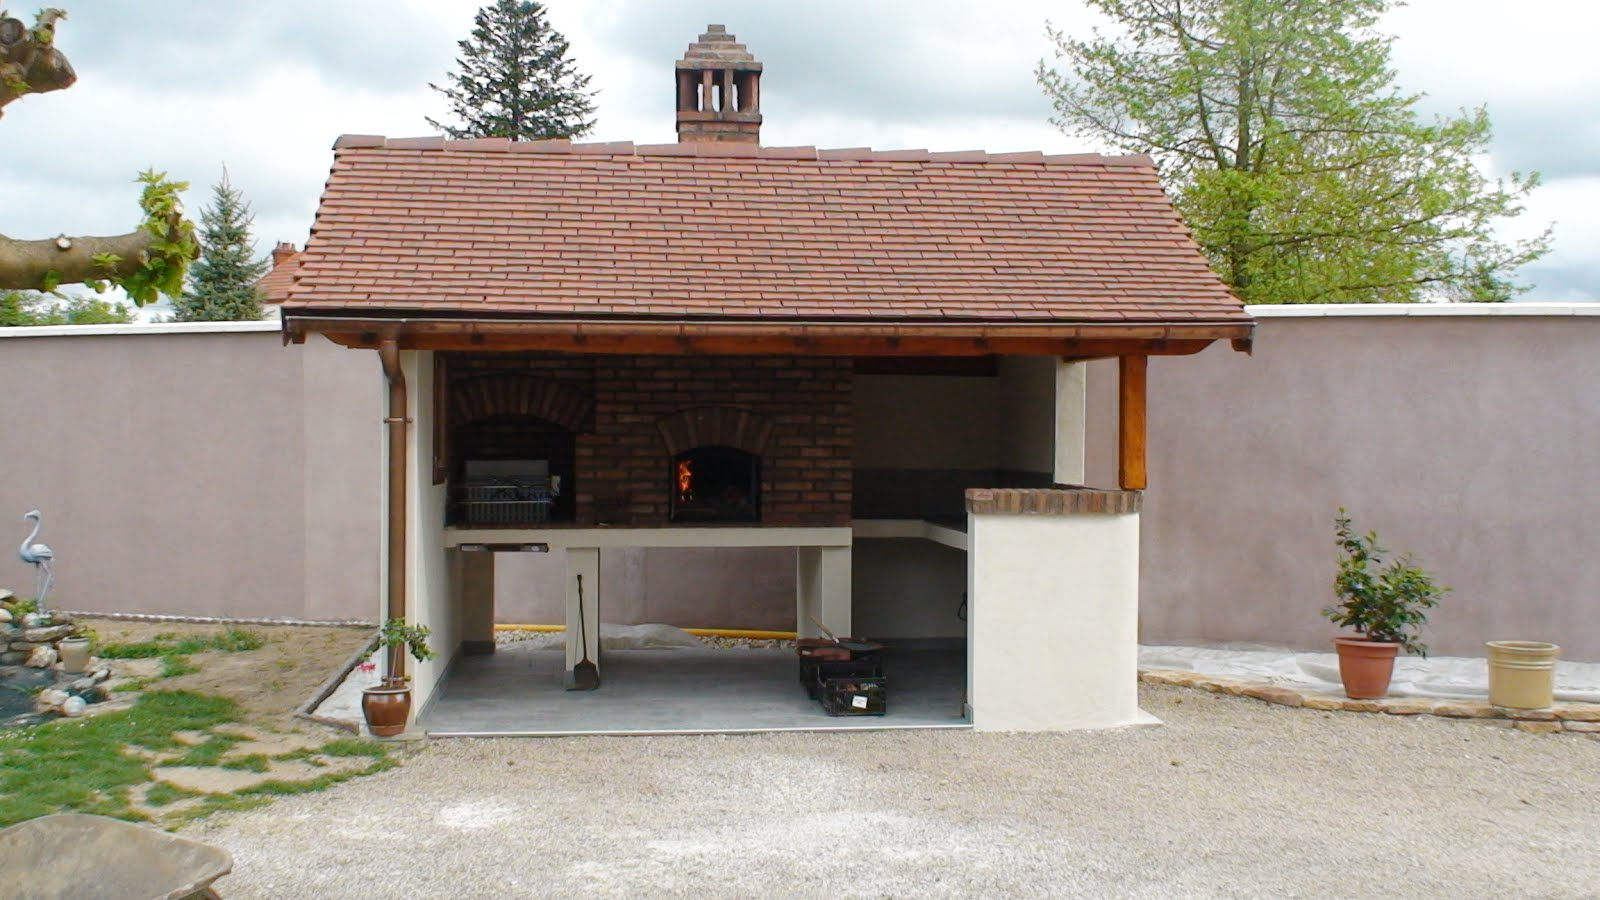 Carrelage exterieur pour barbecue 28 images carrelage for Four barbecue exterieur